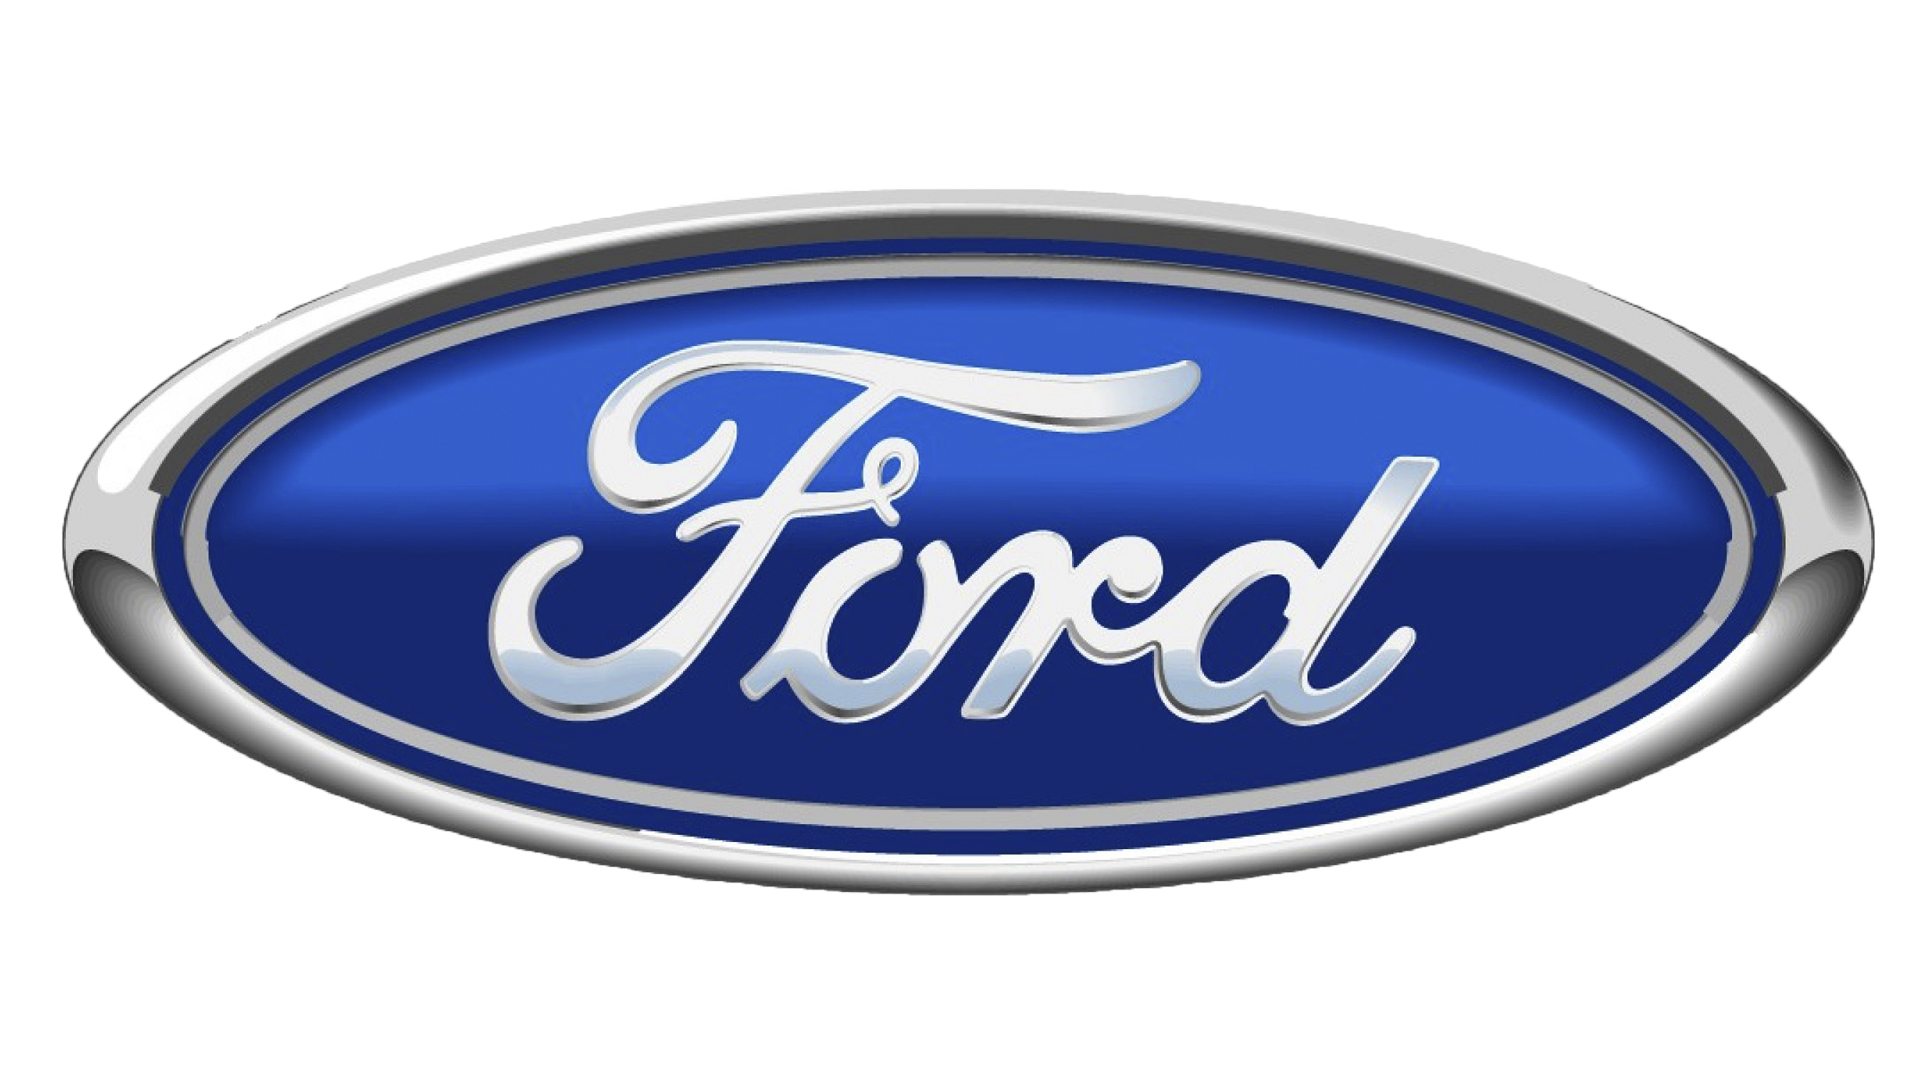 Meaning Ford logo and symbol.